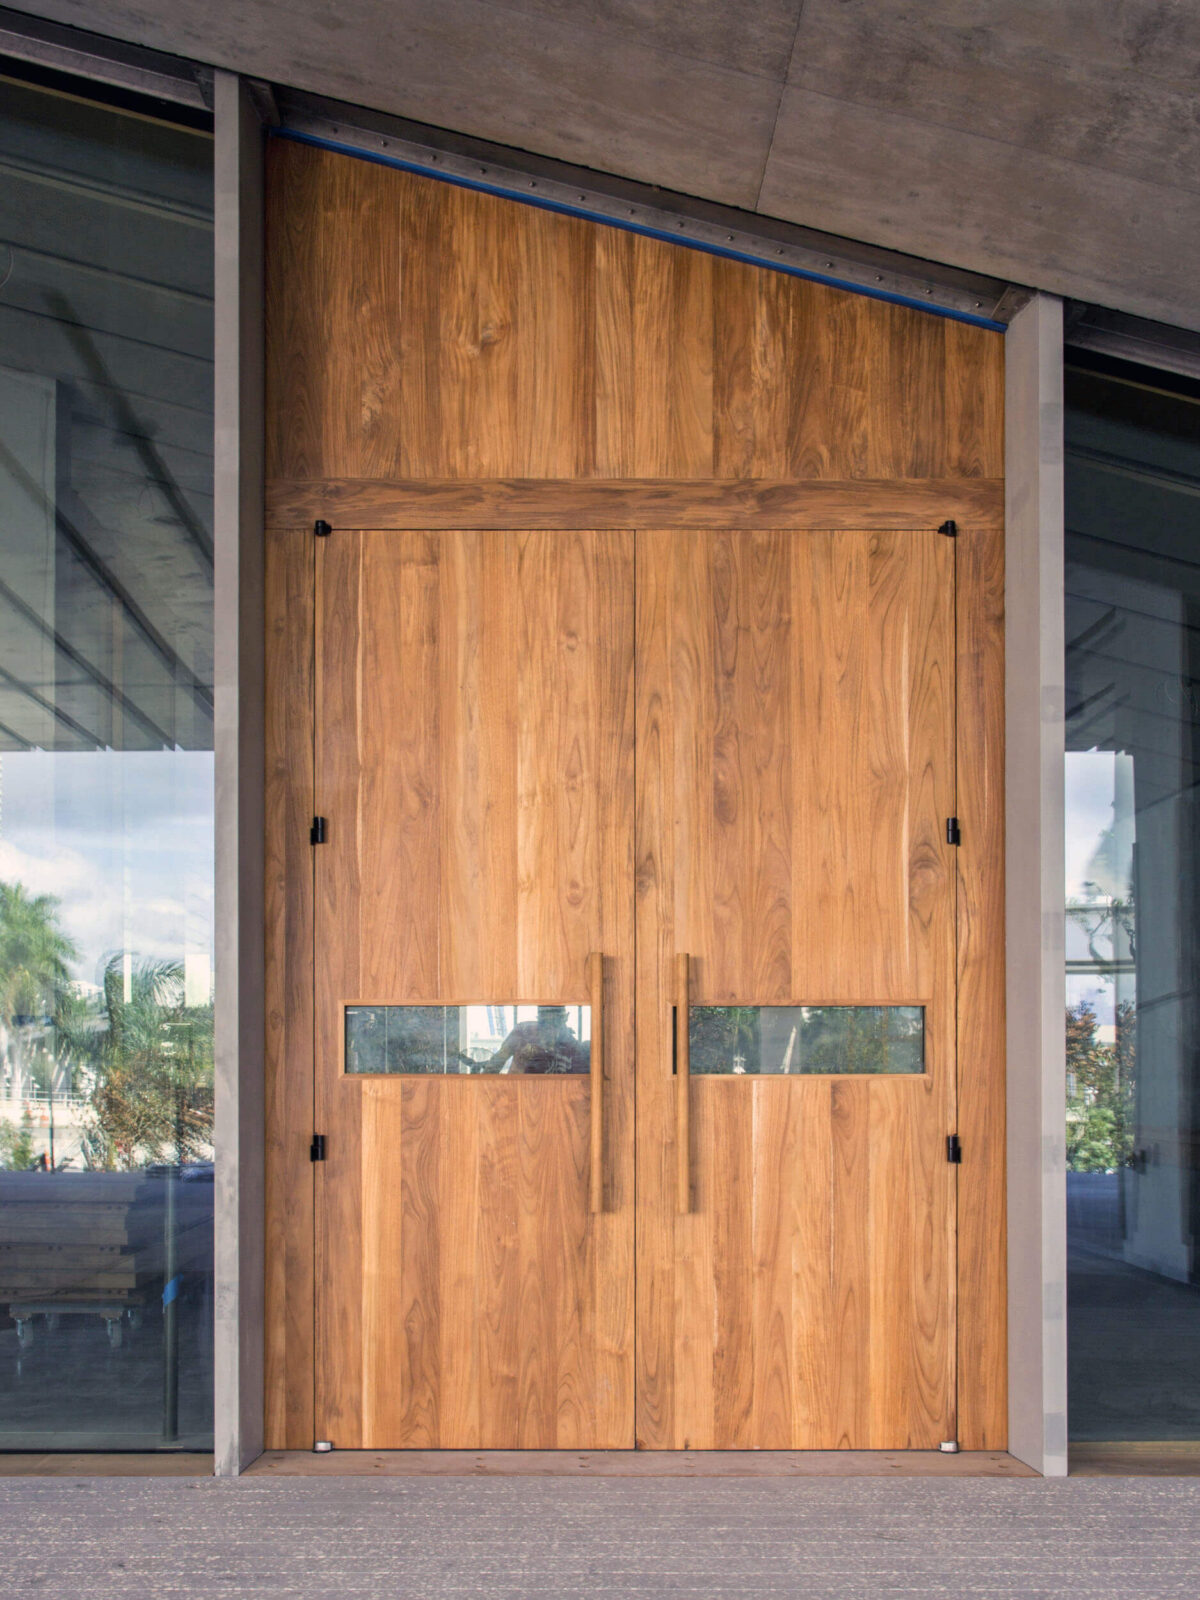 TEAK ENTRANCE DOORS TO RESTAURANT.